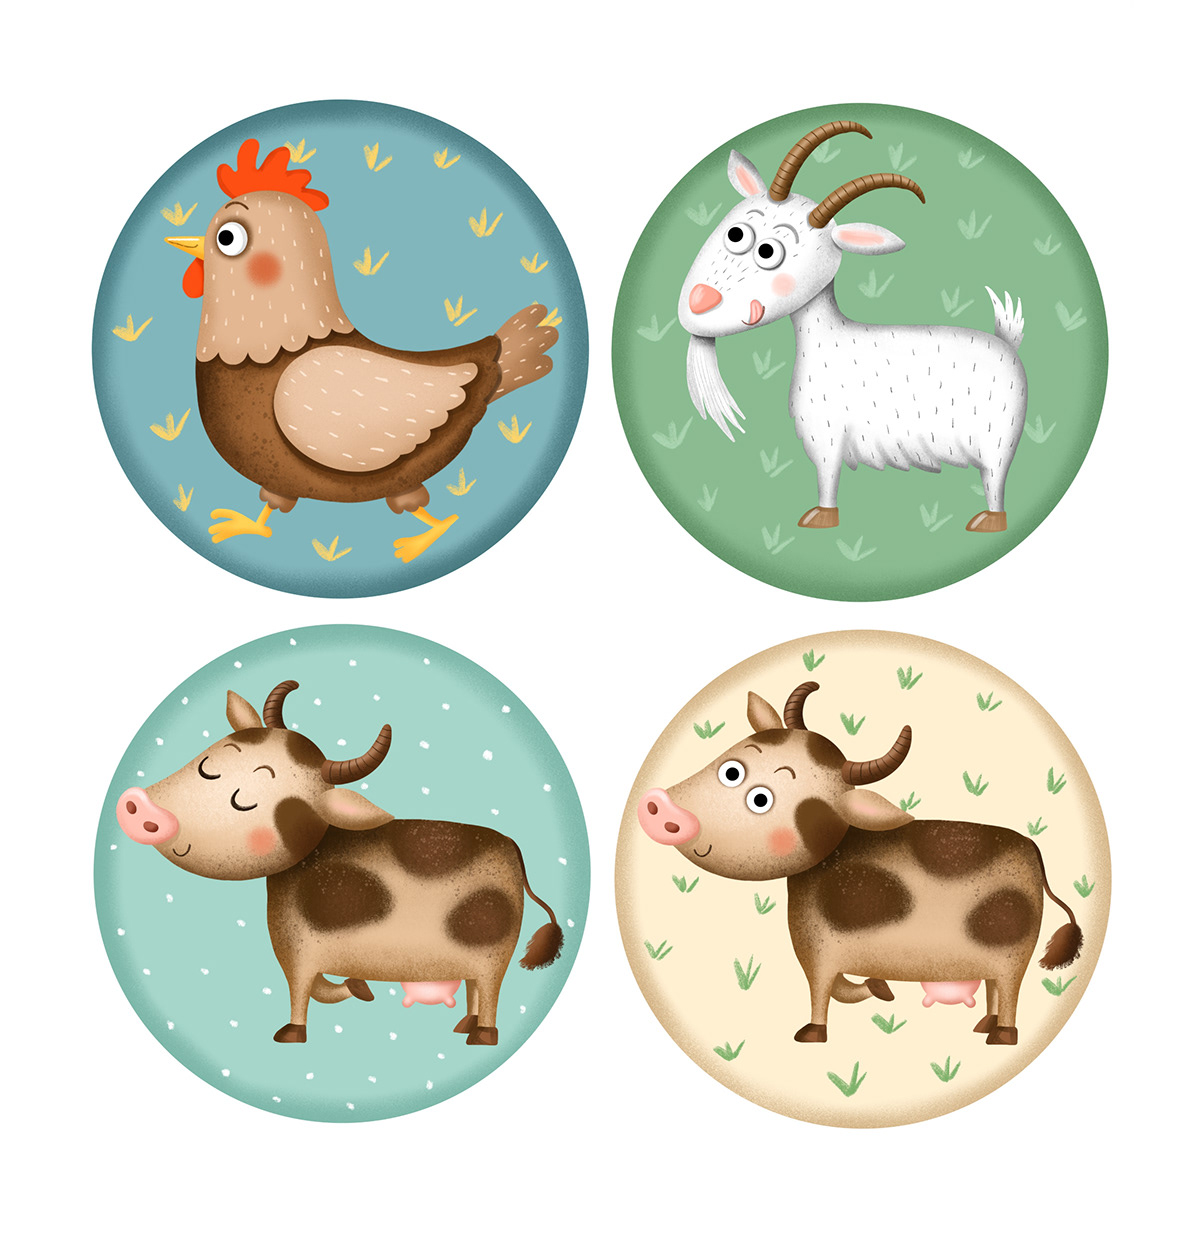 animal bee Character design  children illustration cow cute goat magnet pig fish